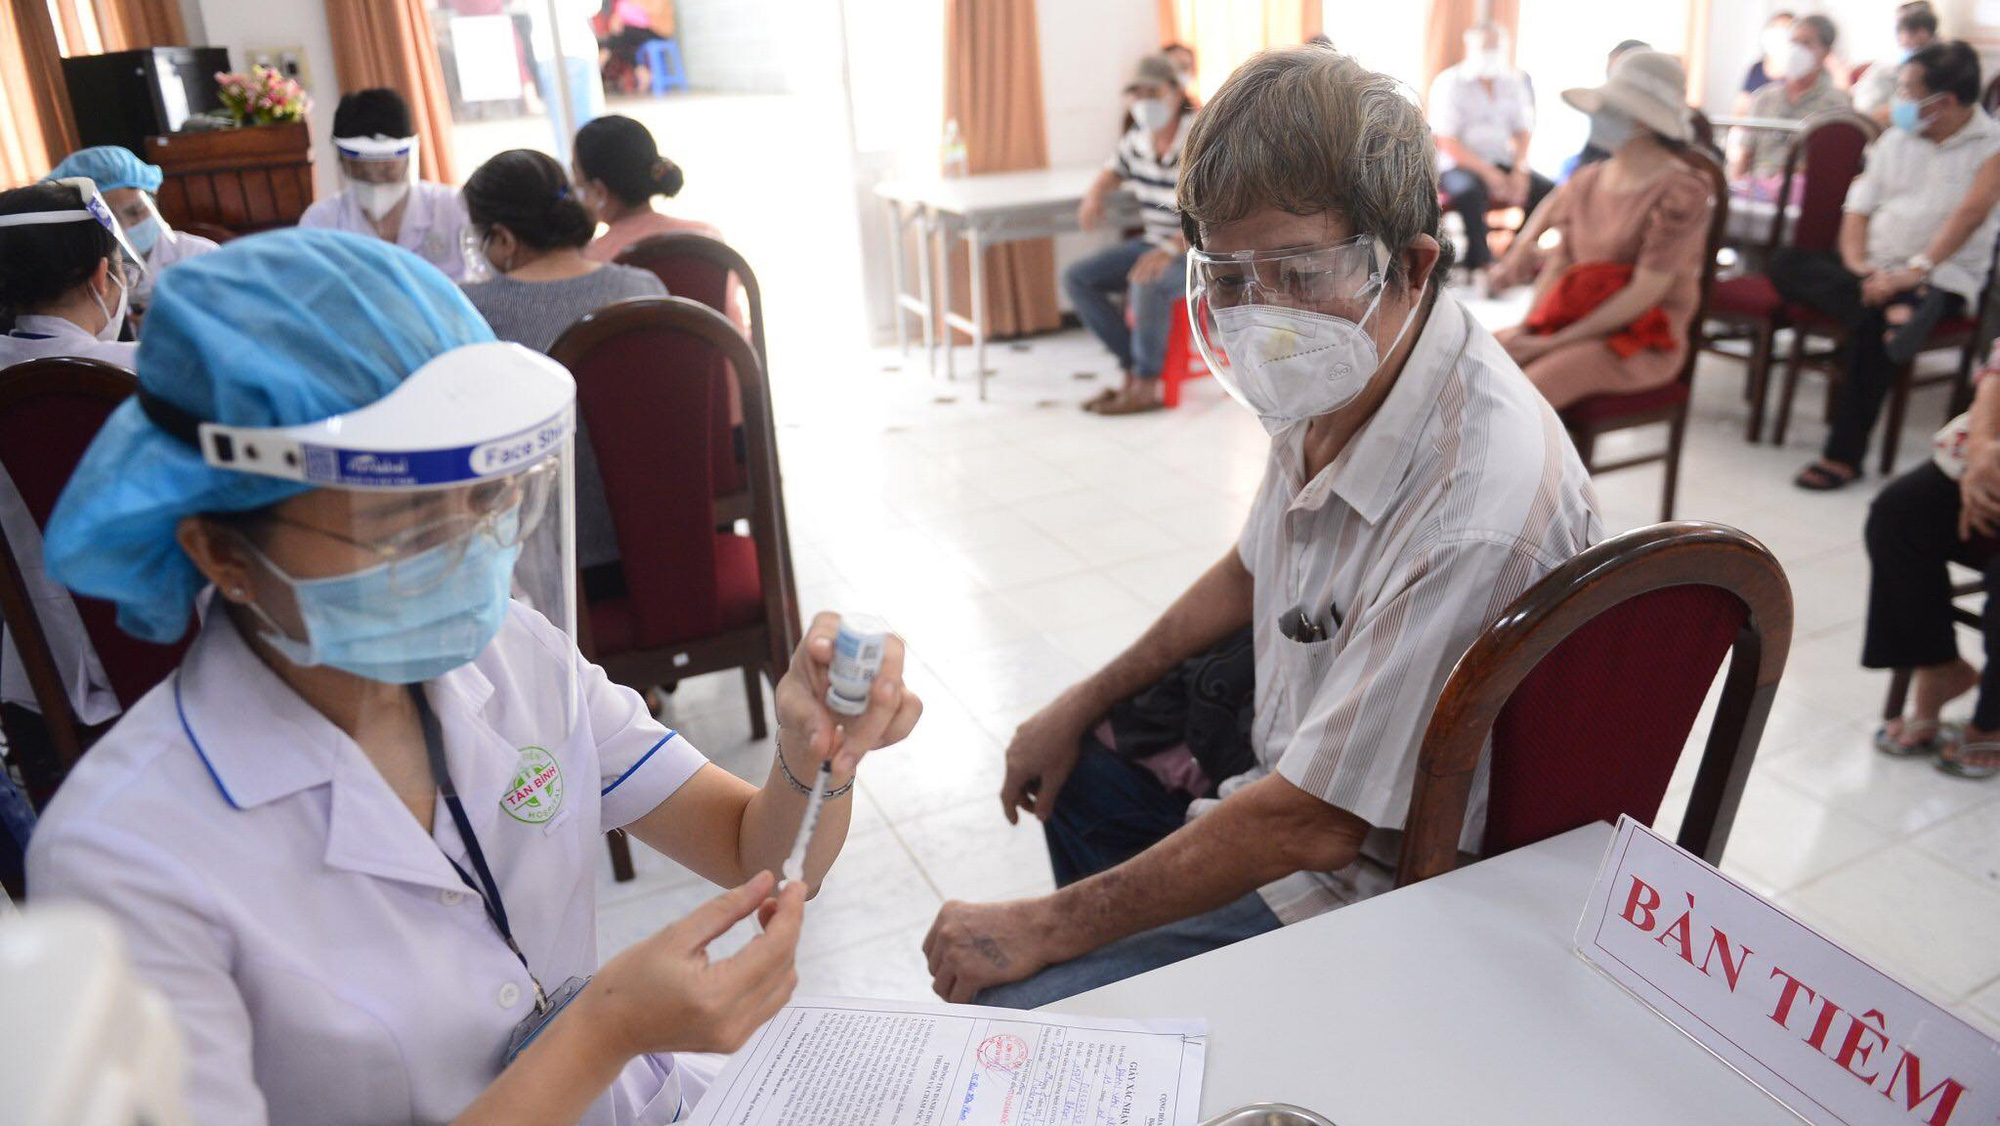 A medical worker prepares to administer a Moderna vaccine shot to a man above 65 years old in Tan Binh District, Ho Chi Minh City. Photo: Q. Dinh / Tuoi Tre